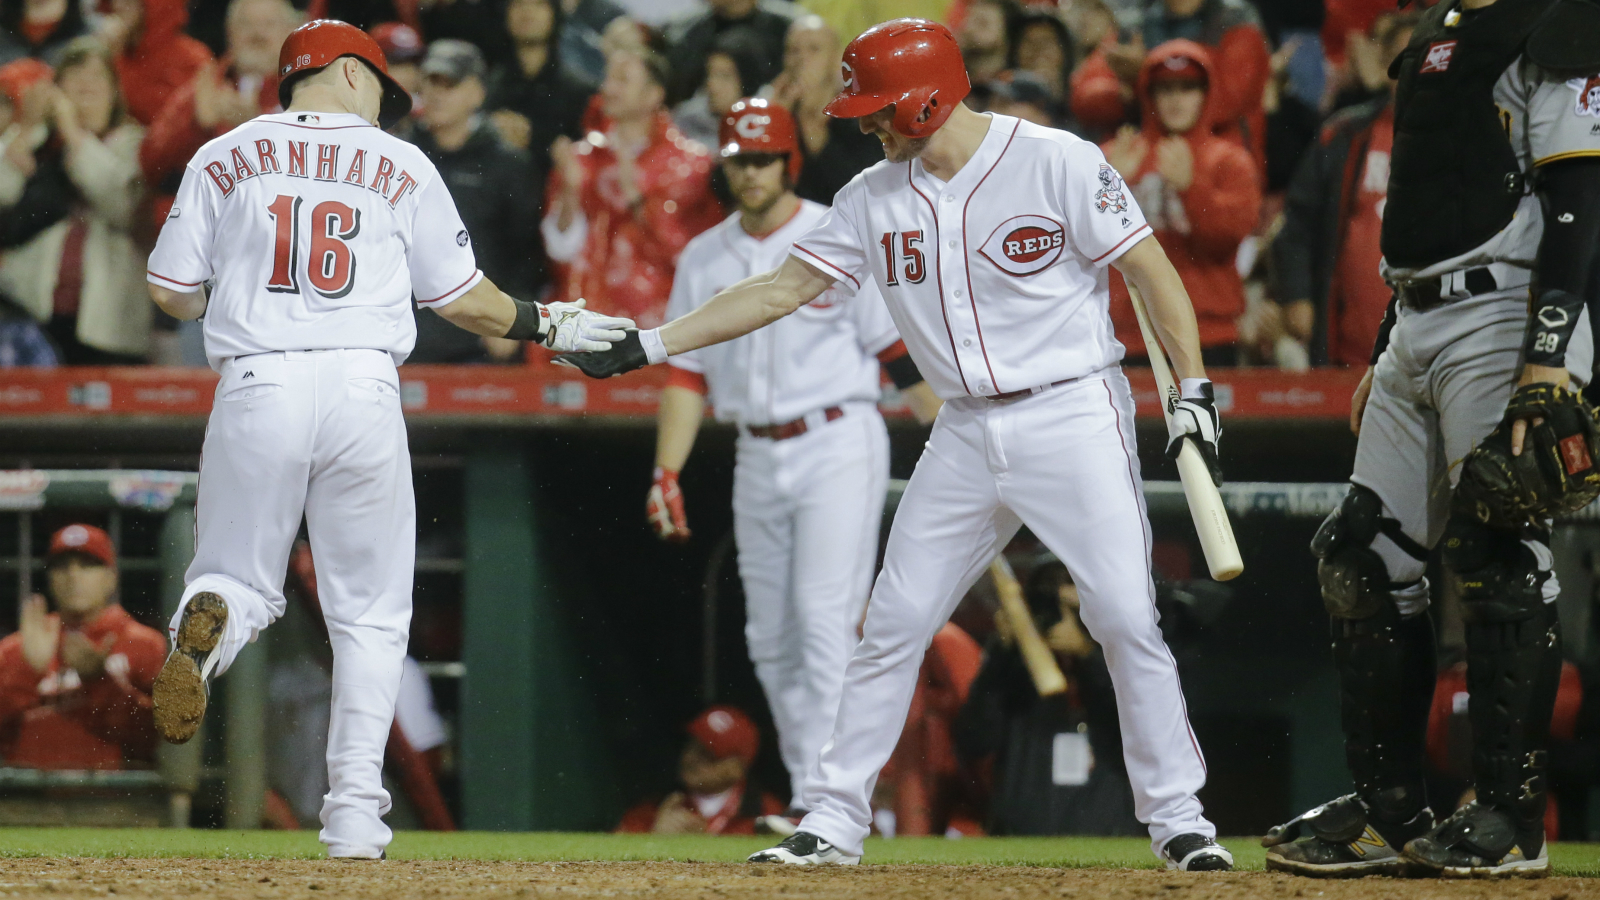 Barnhart's homer lifts Reds to 3-2 victory over Pirates